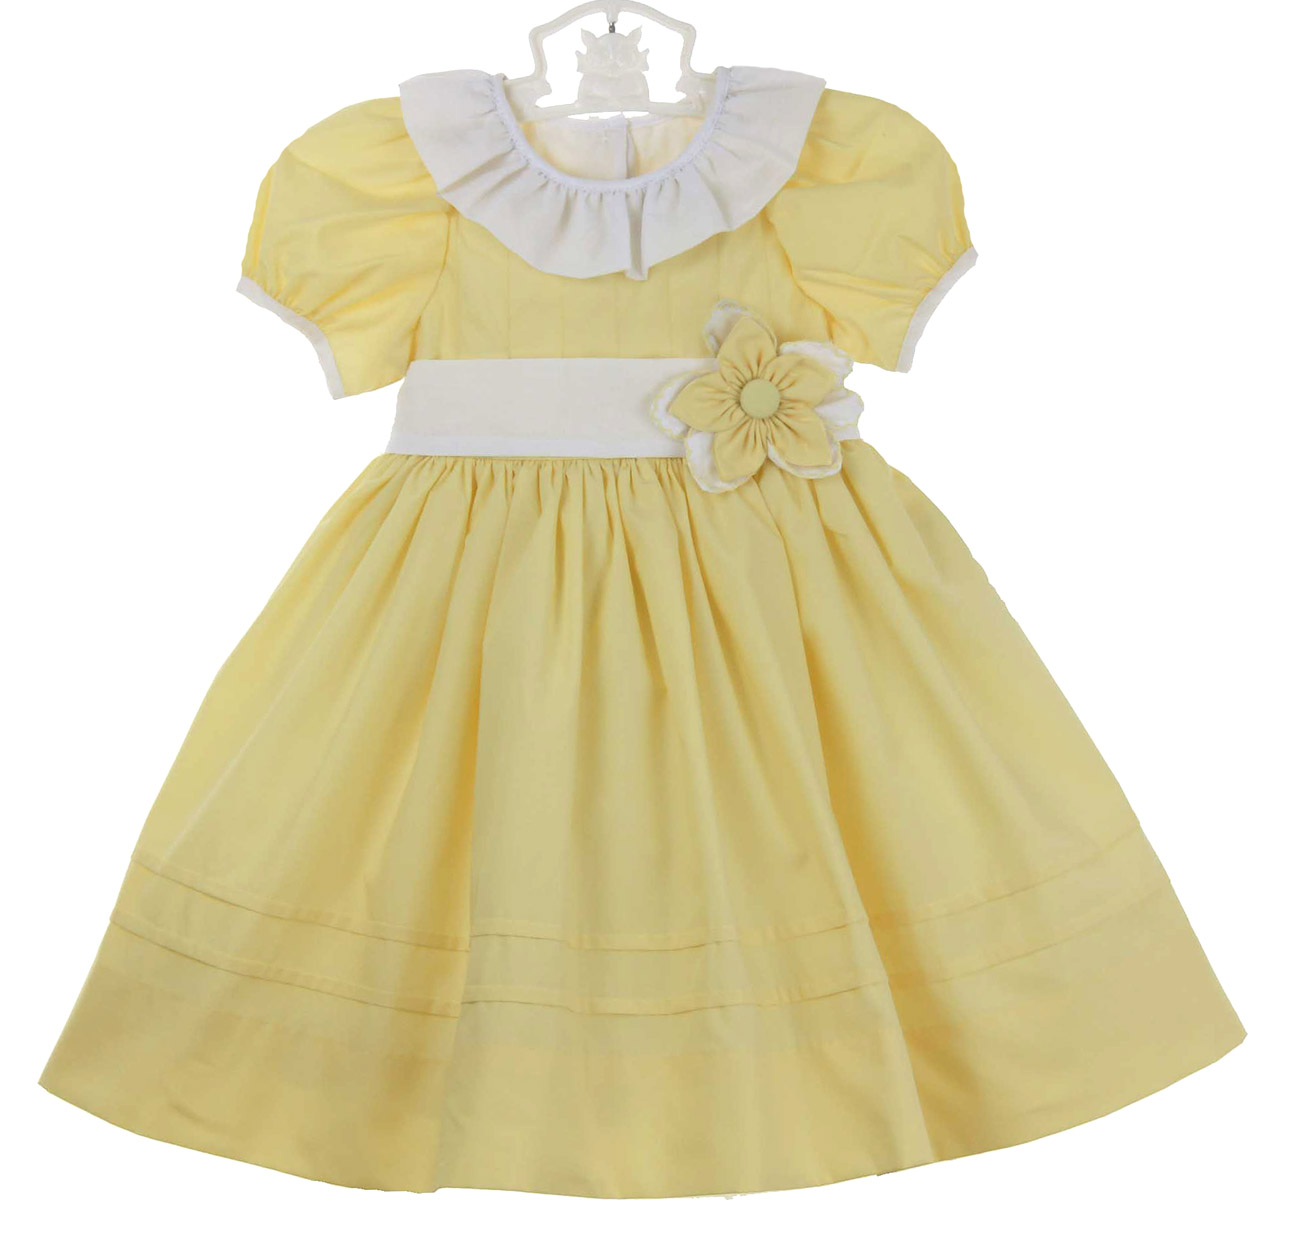 Le Za Me Yellow Dress With White Ruffled Collar And